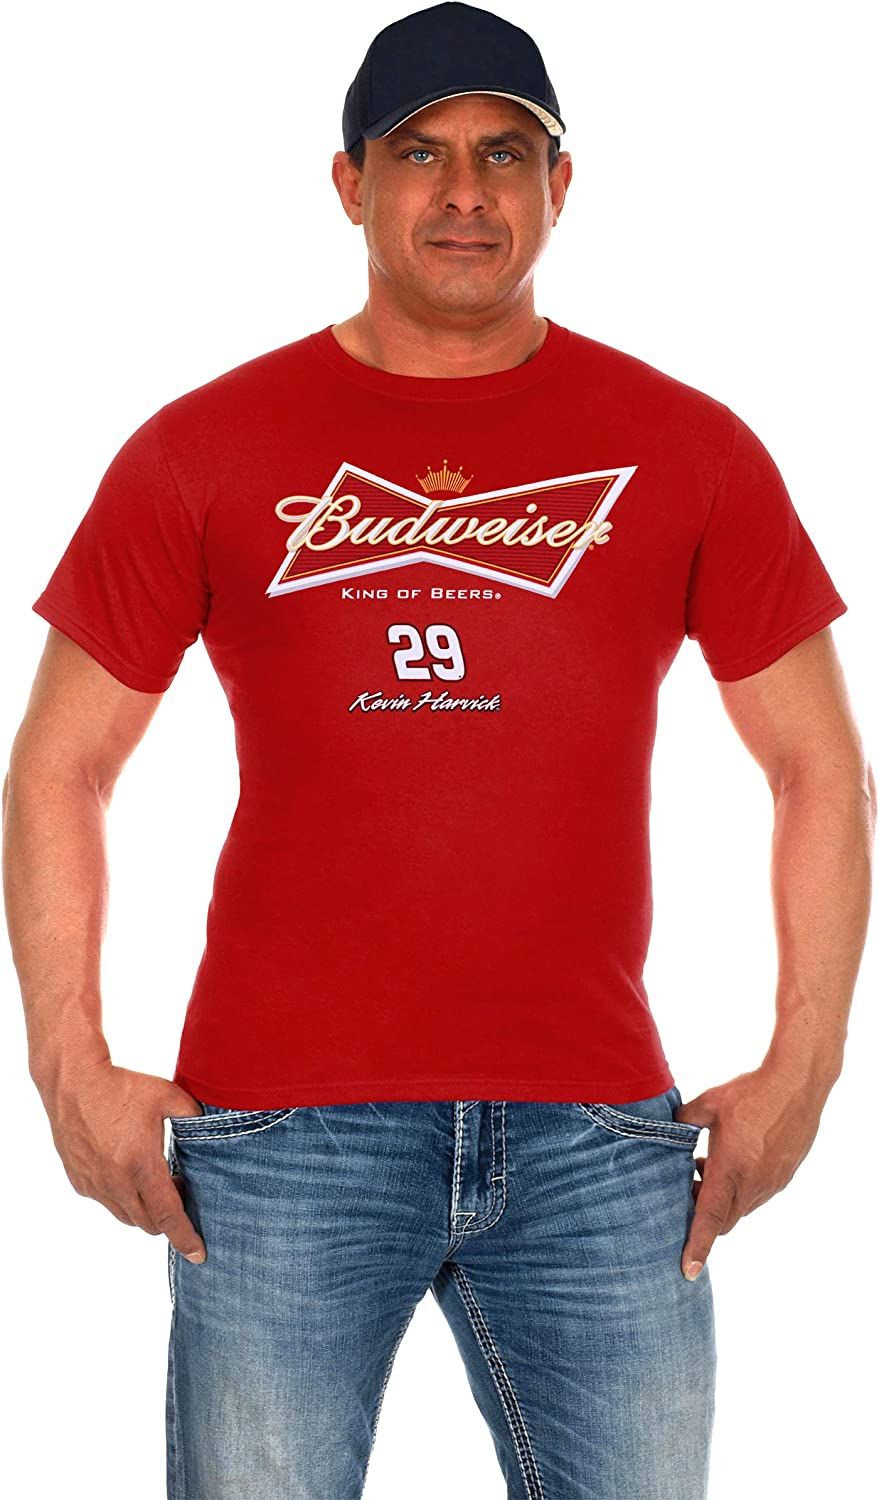 Men's Kevin Harvick #29 Budweiser Nascar T-Shirt Two Styles Black & Red